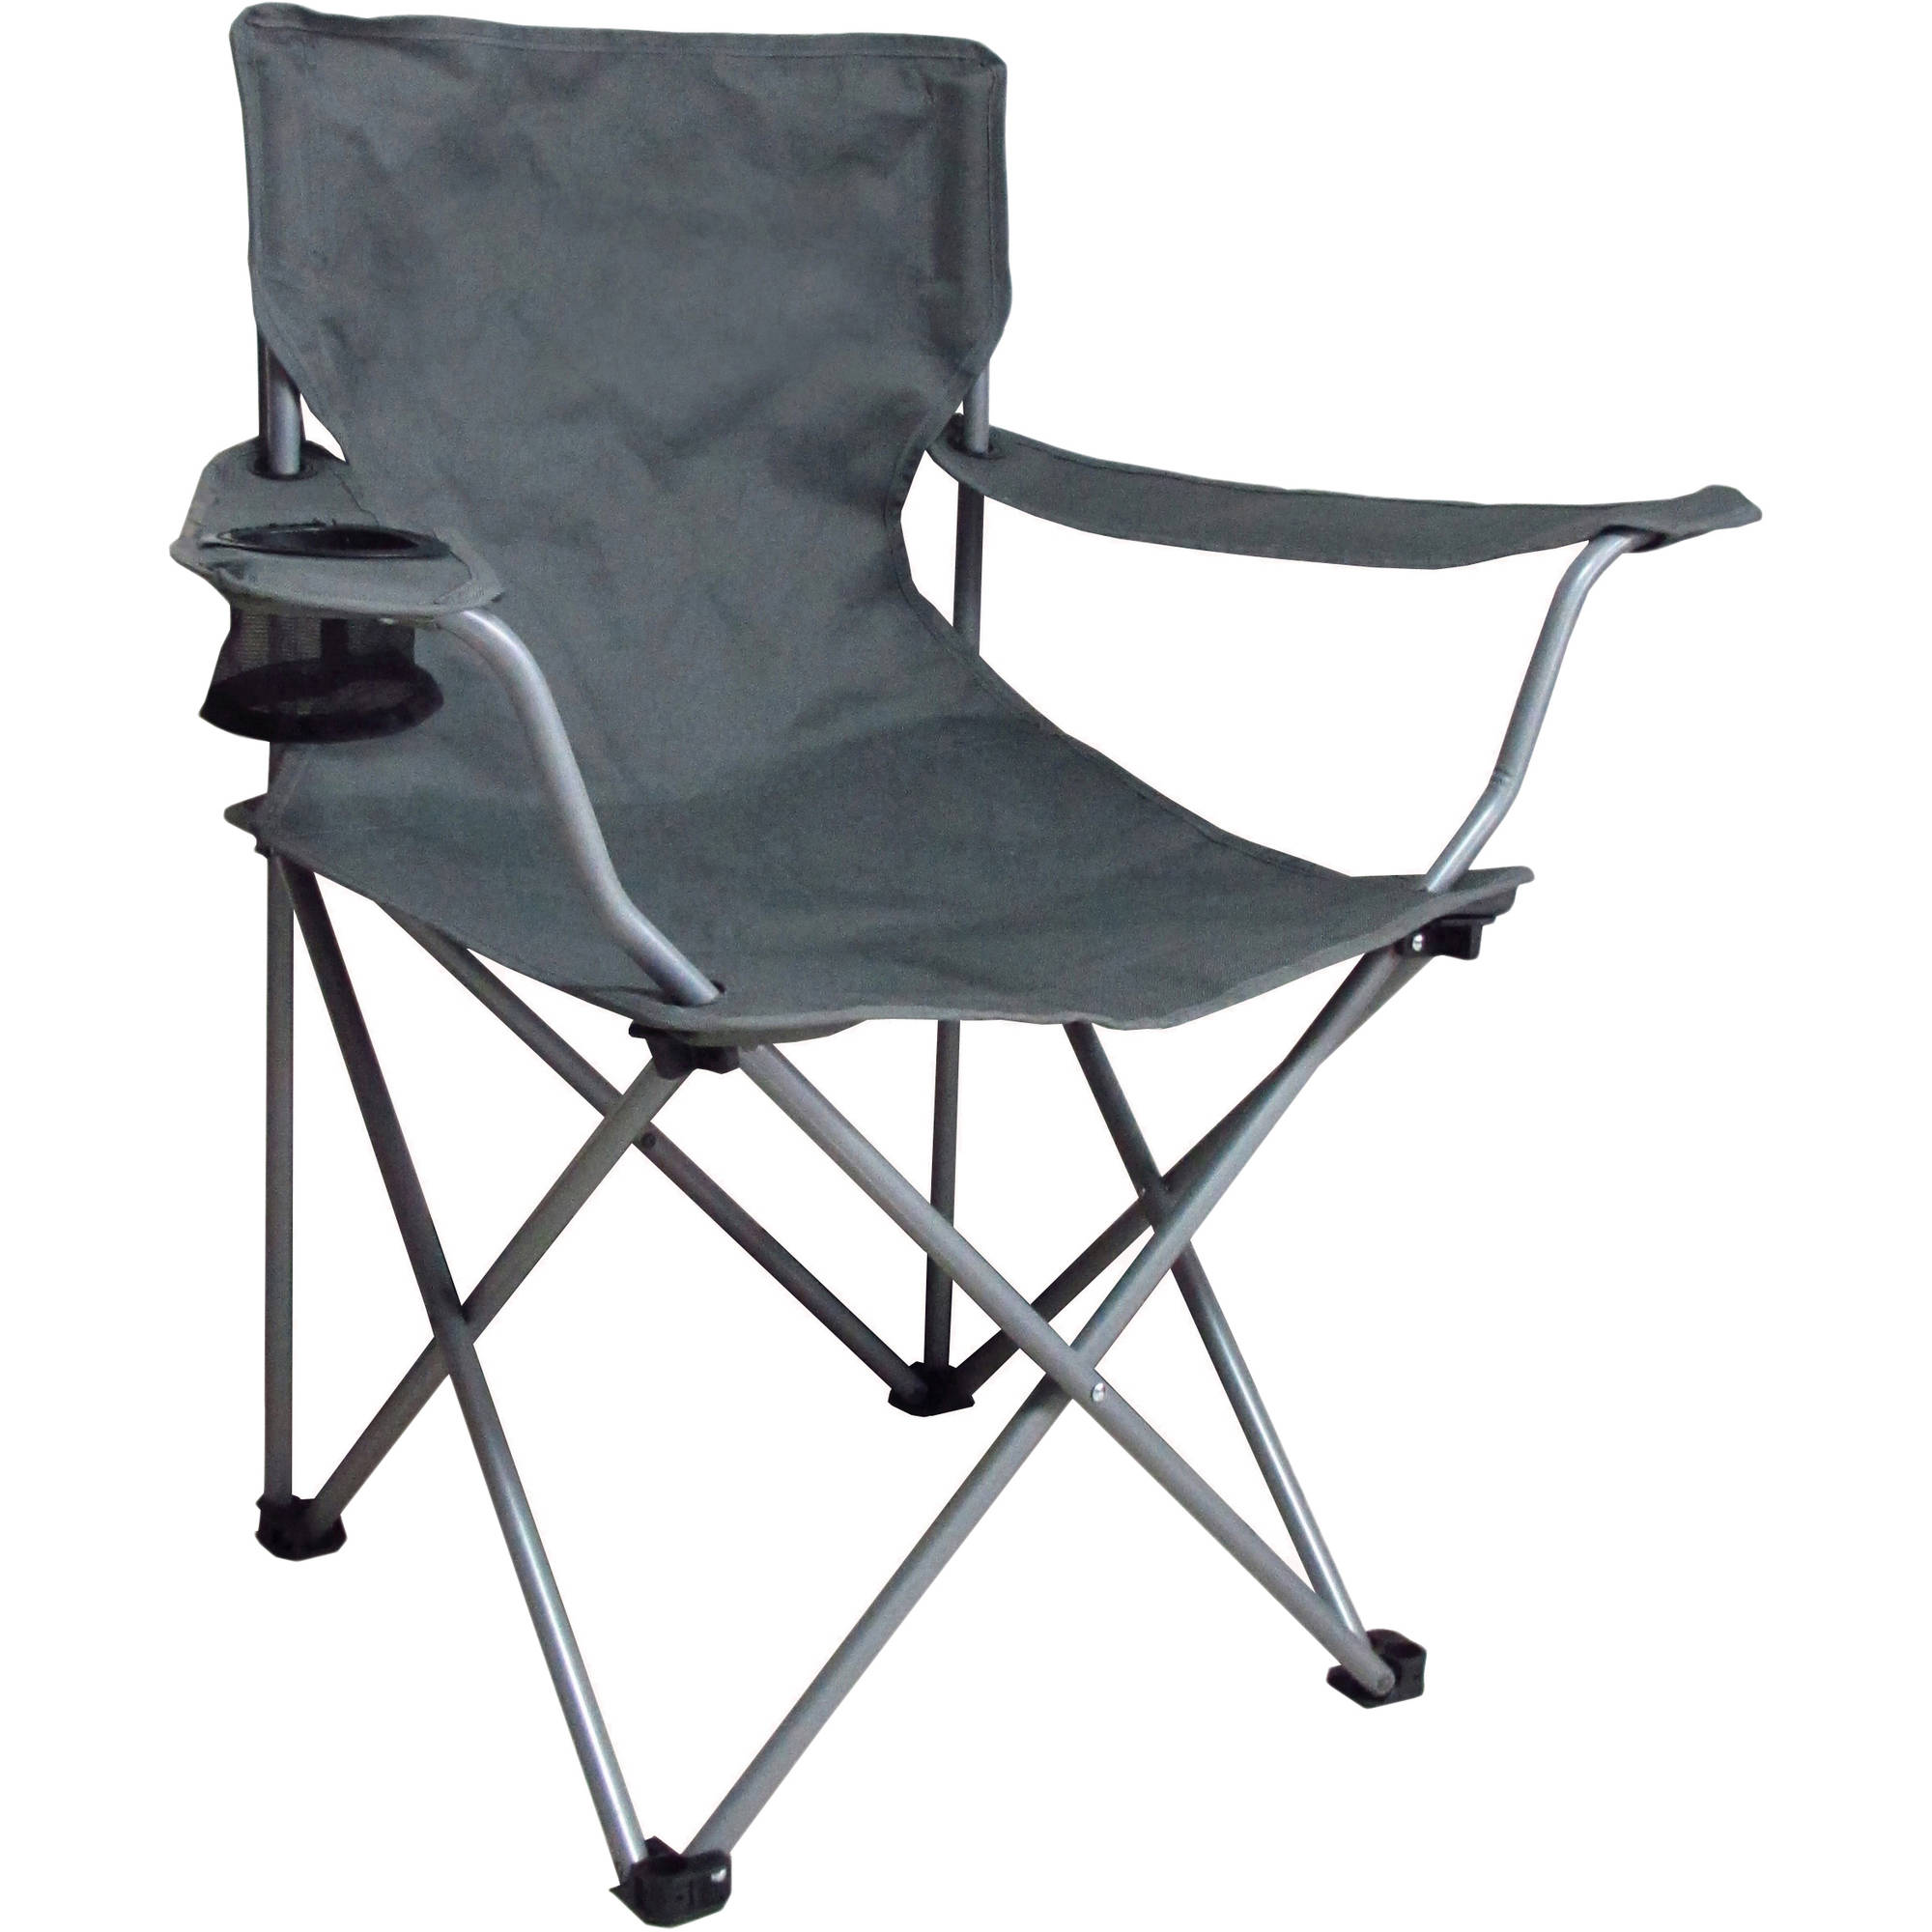 lawn chairs ozark trail folding chair ADADESL